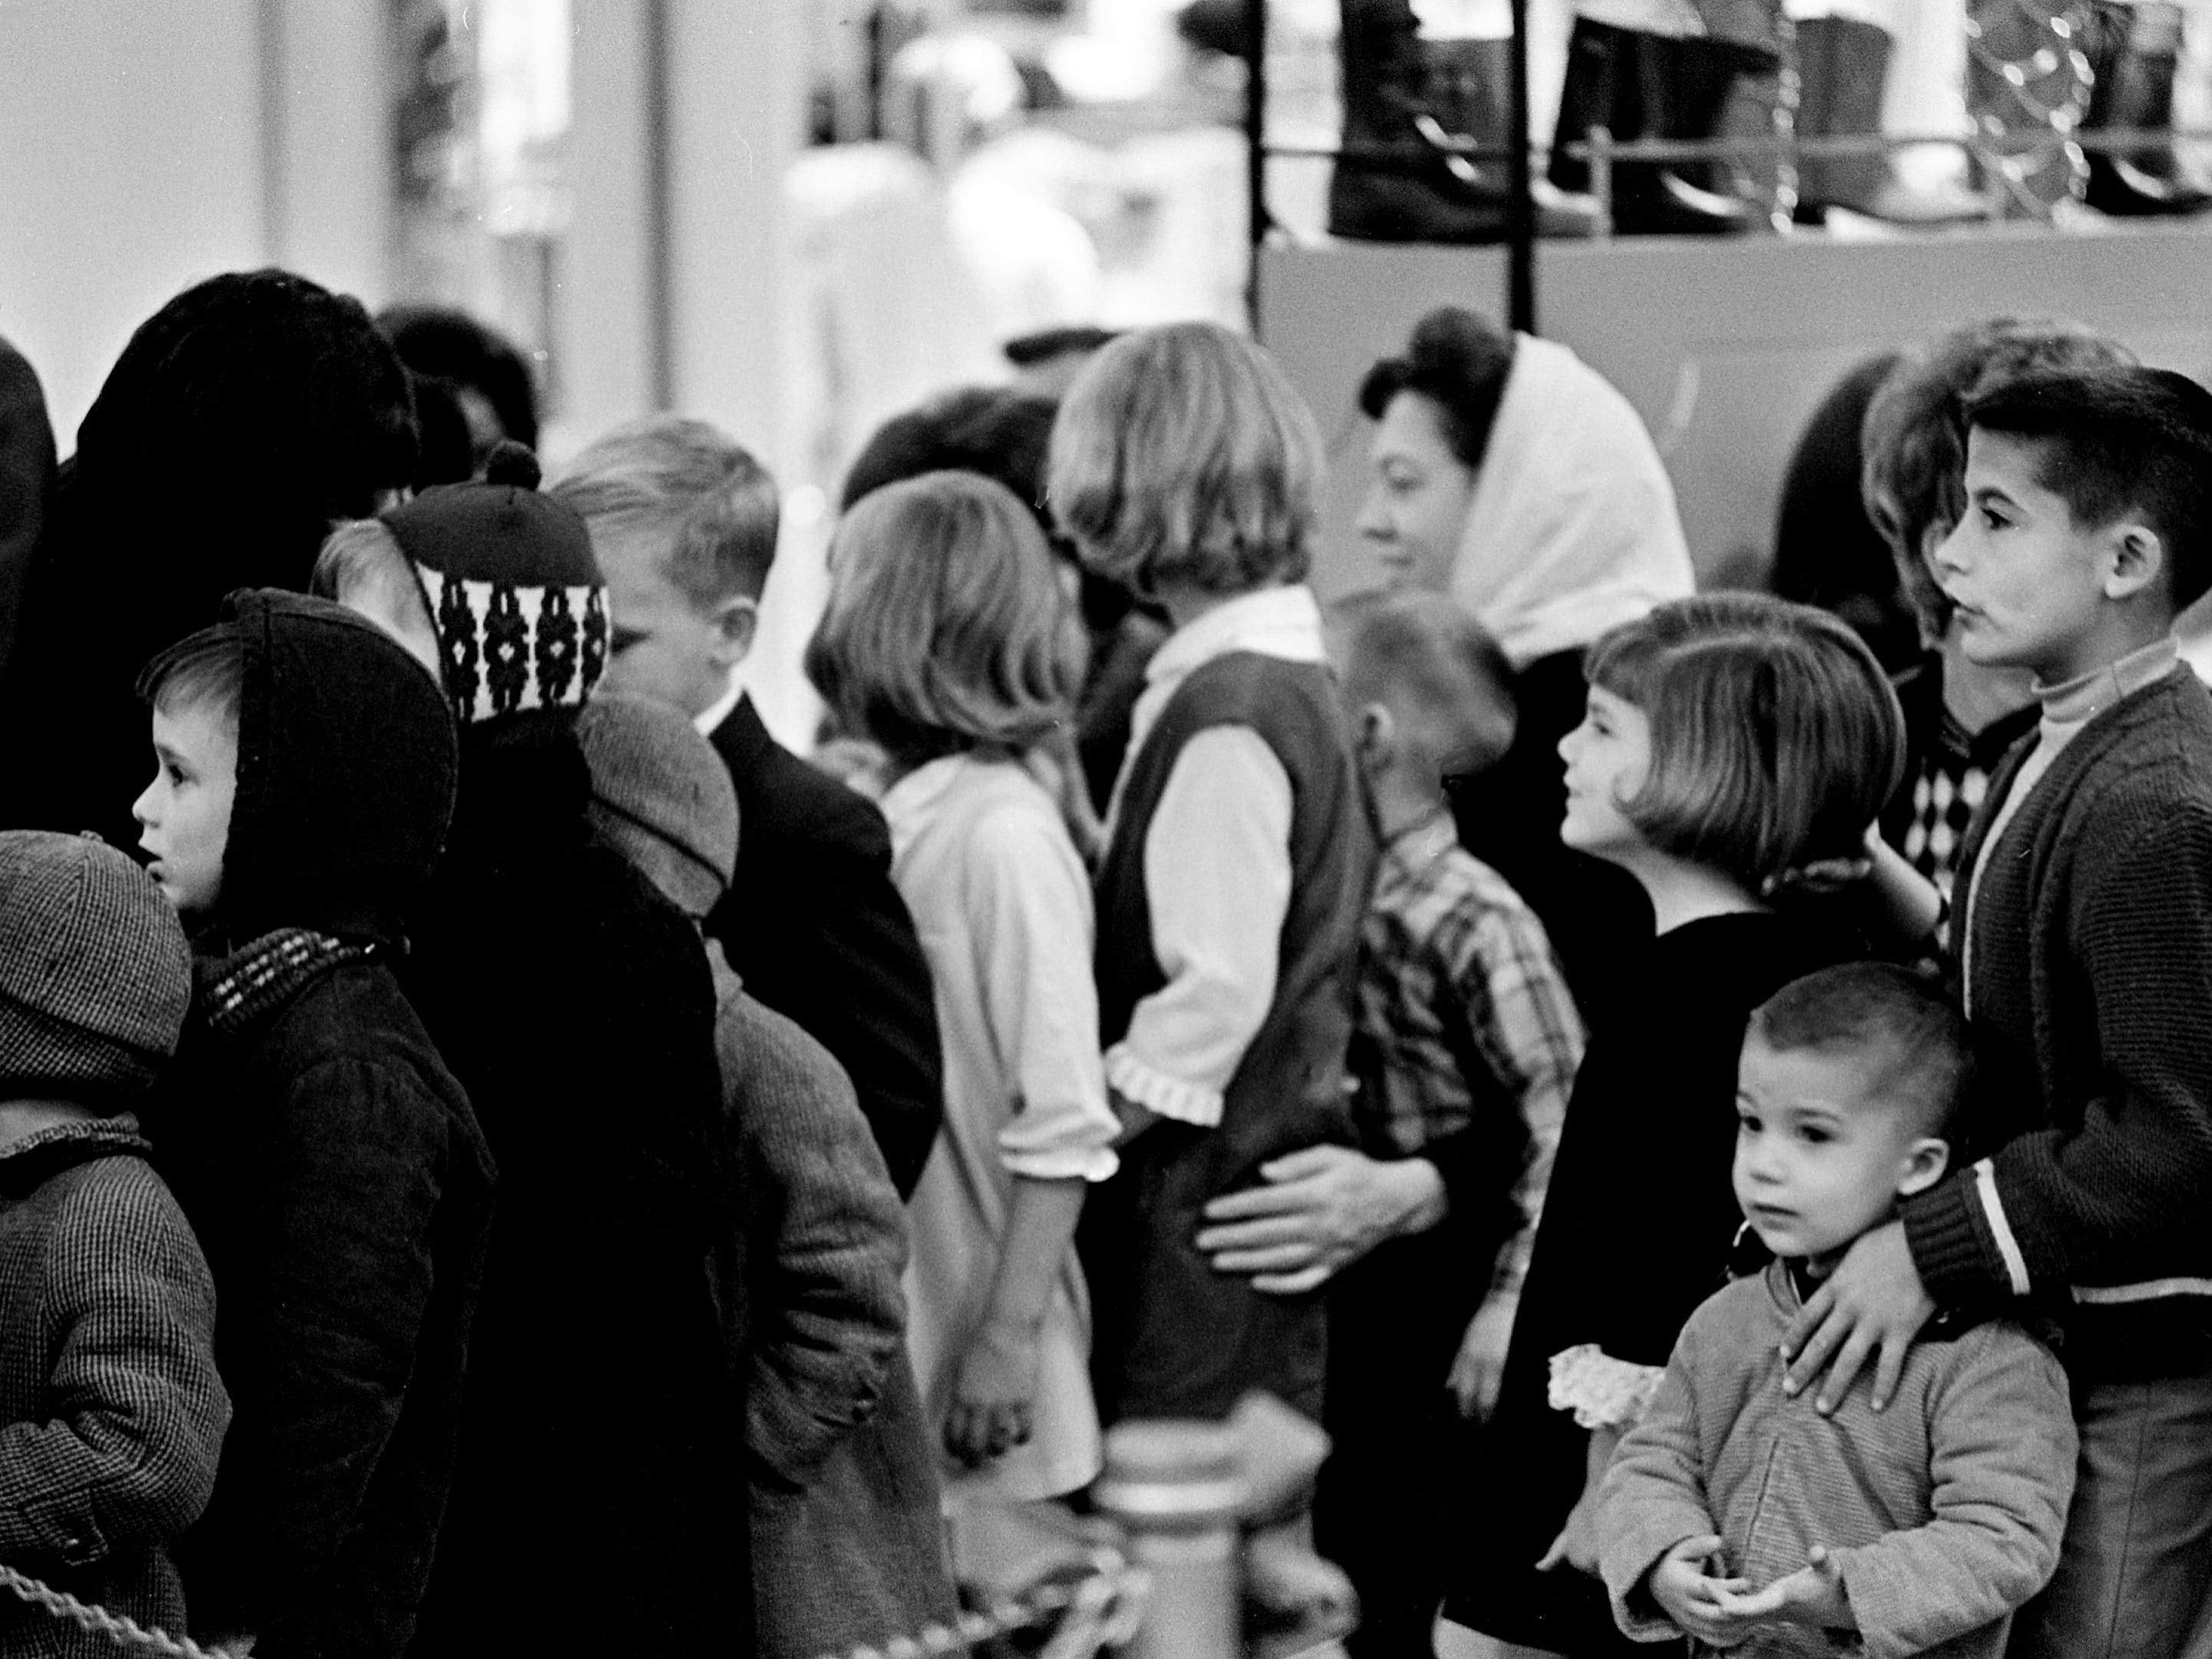 A crowd of youngsters is forming a long line as they wait to tell Santa Claus what they want for Christmas at one of the downtown Nashville's department stores Dec. 7, 1968.